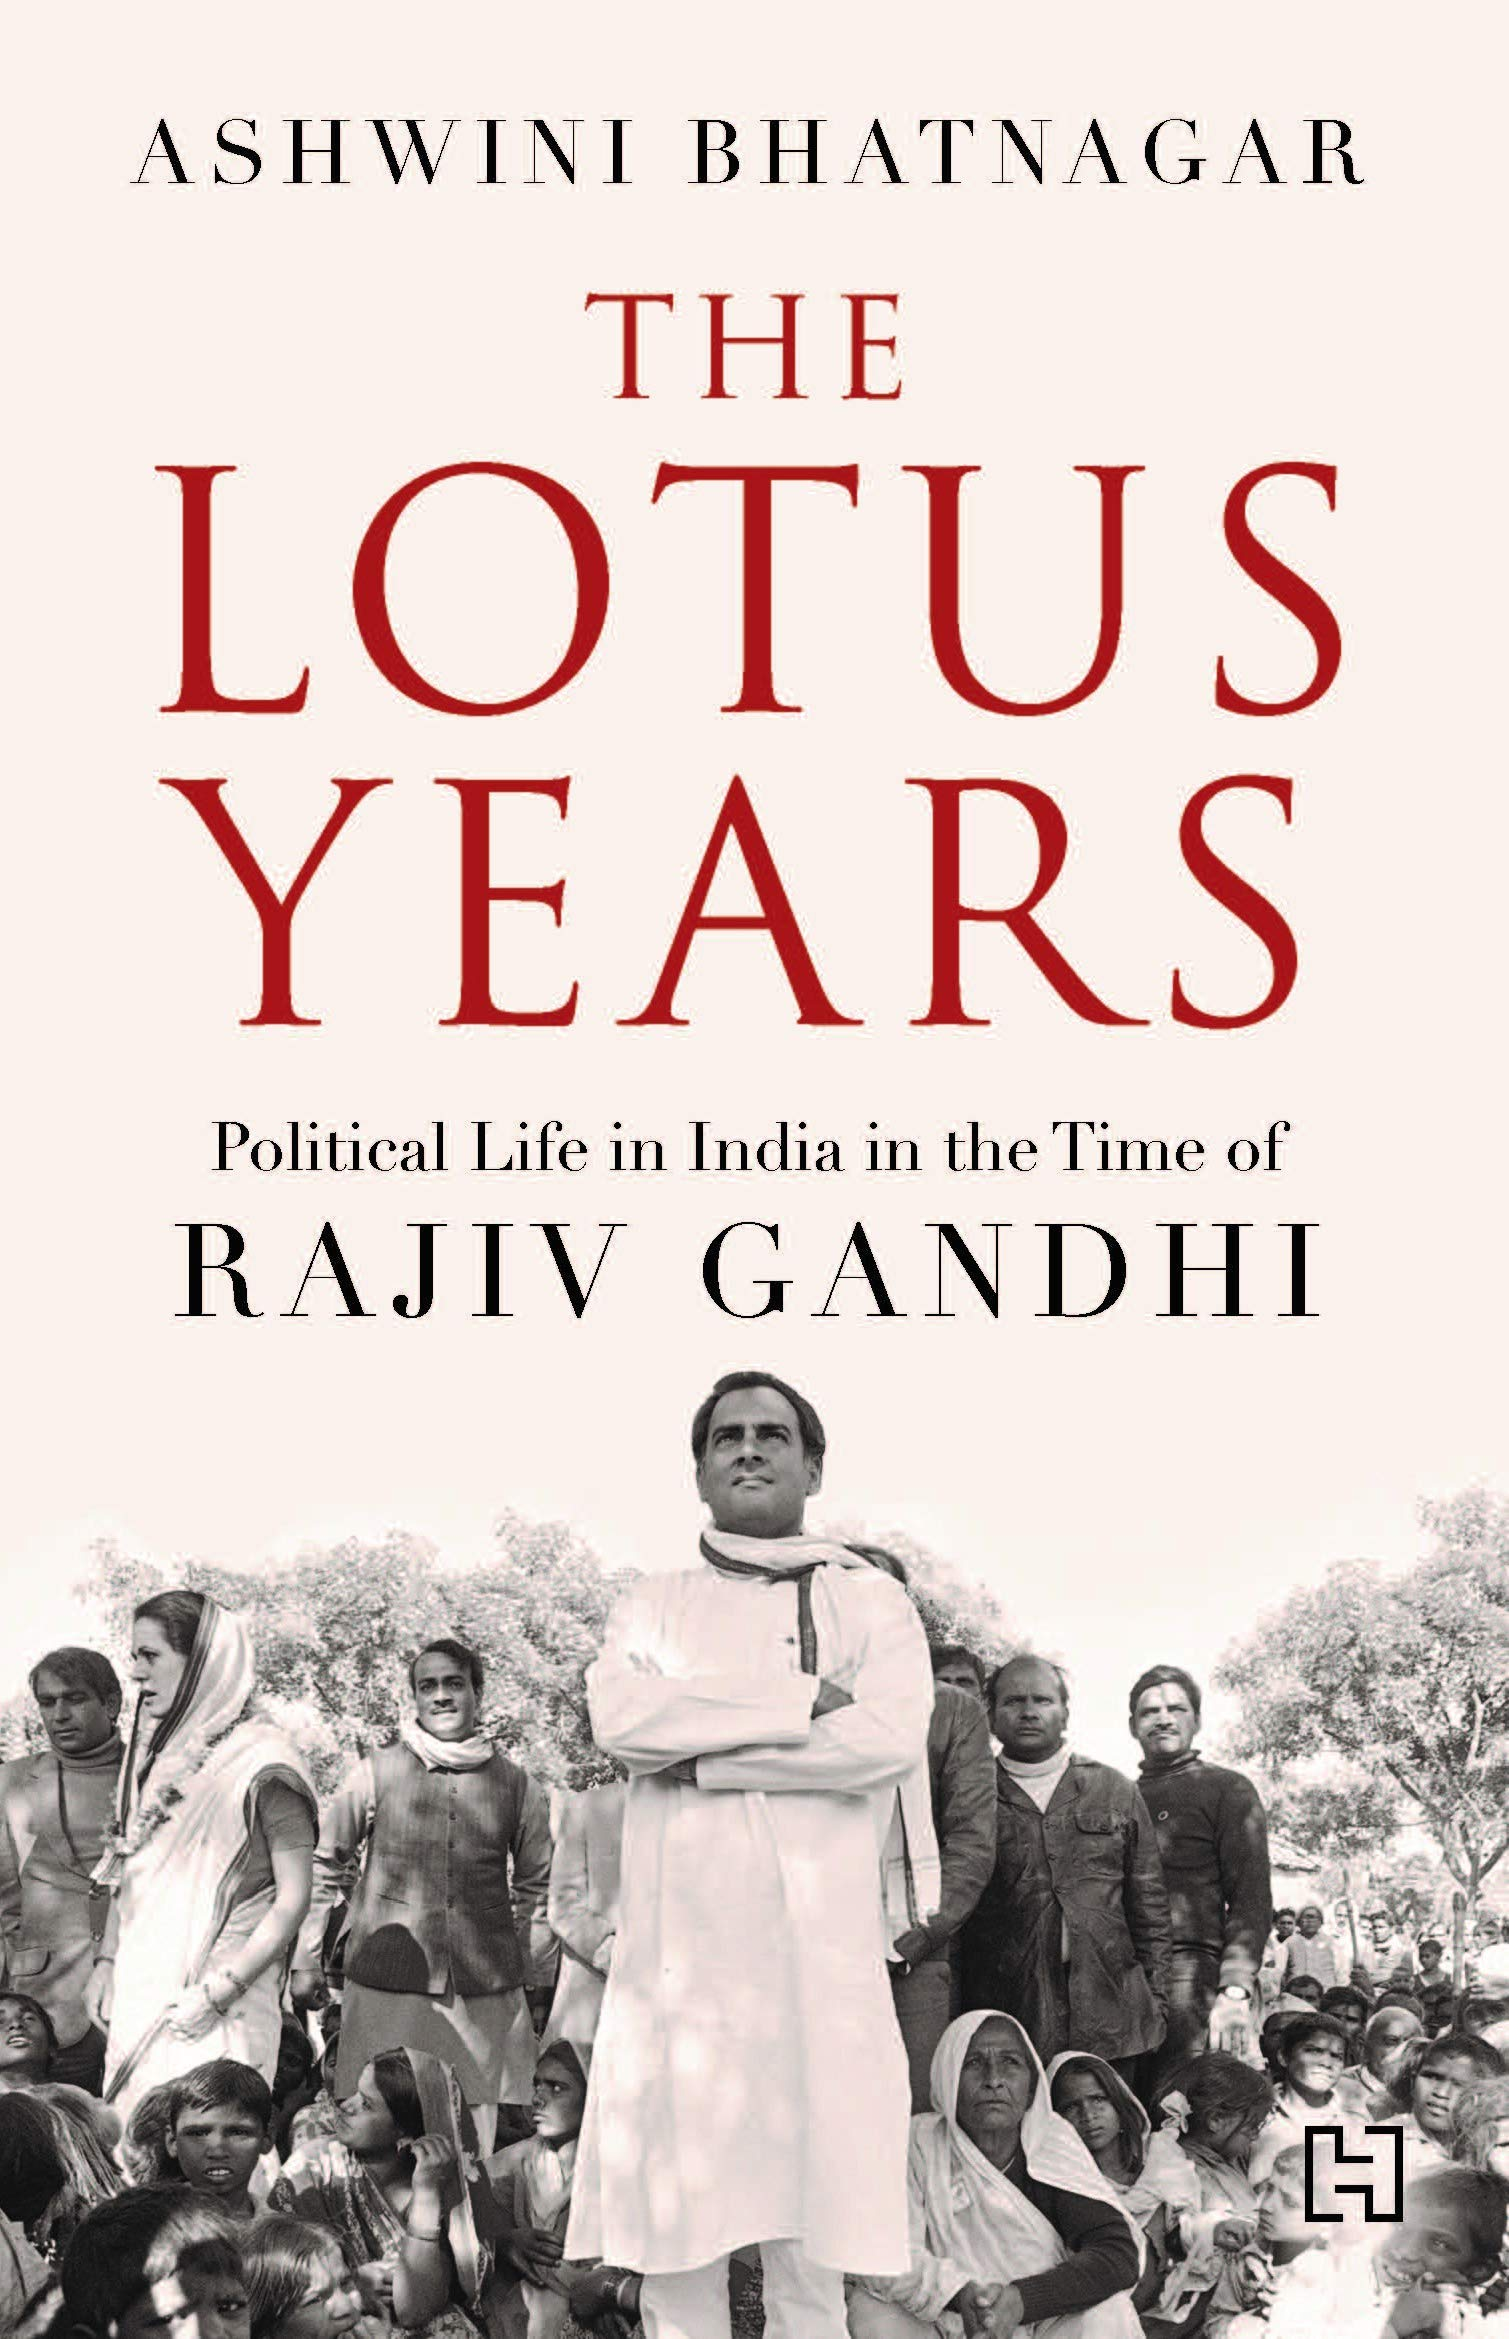 The Lotus Years: Political Life in India in the time of Rajiv Gandhi by Ashwini Bhatnagar, Hachette, Rs 499